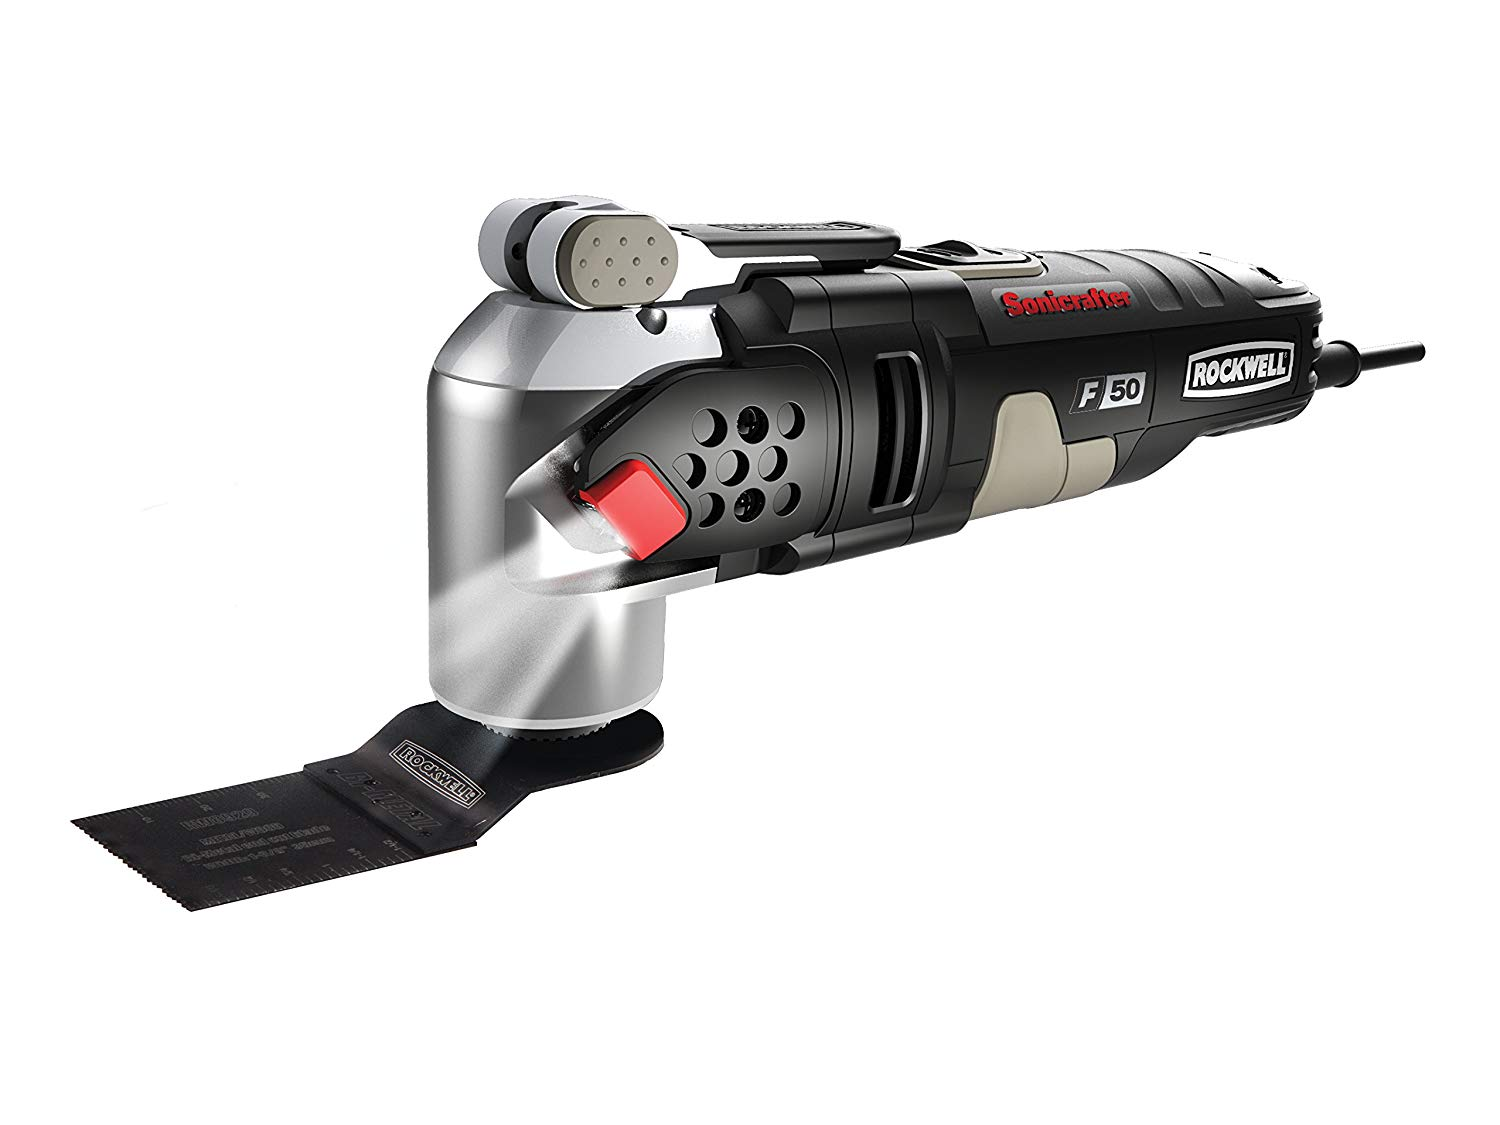 Rockwell 4.0 Amp Sonicrafter F50 Oscillating Multi-Tool